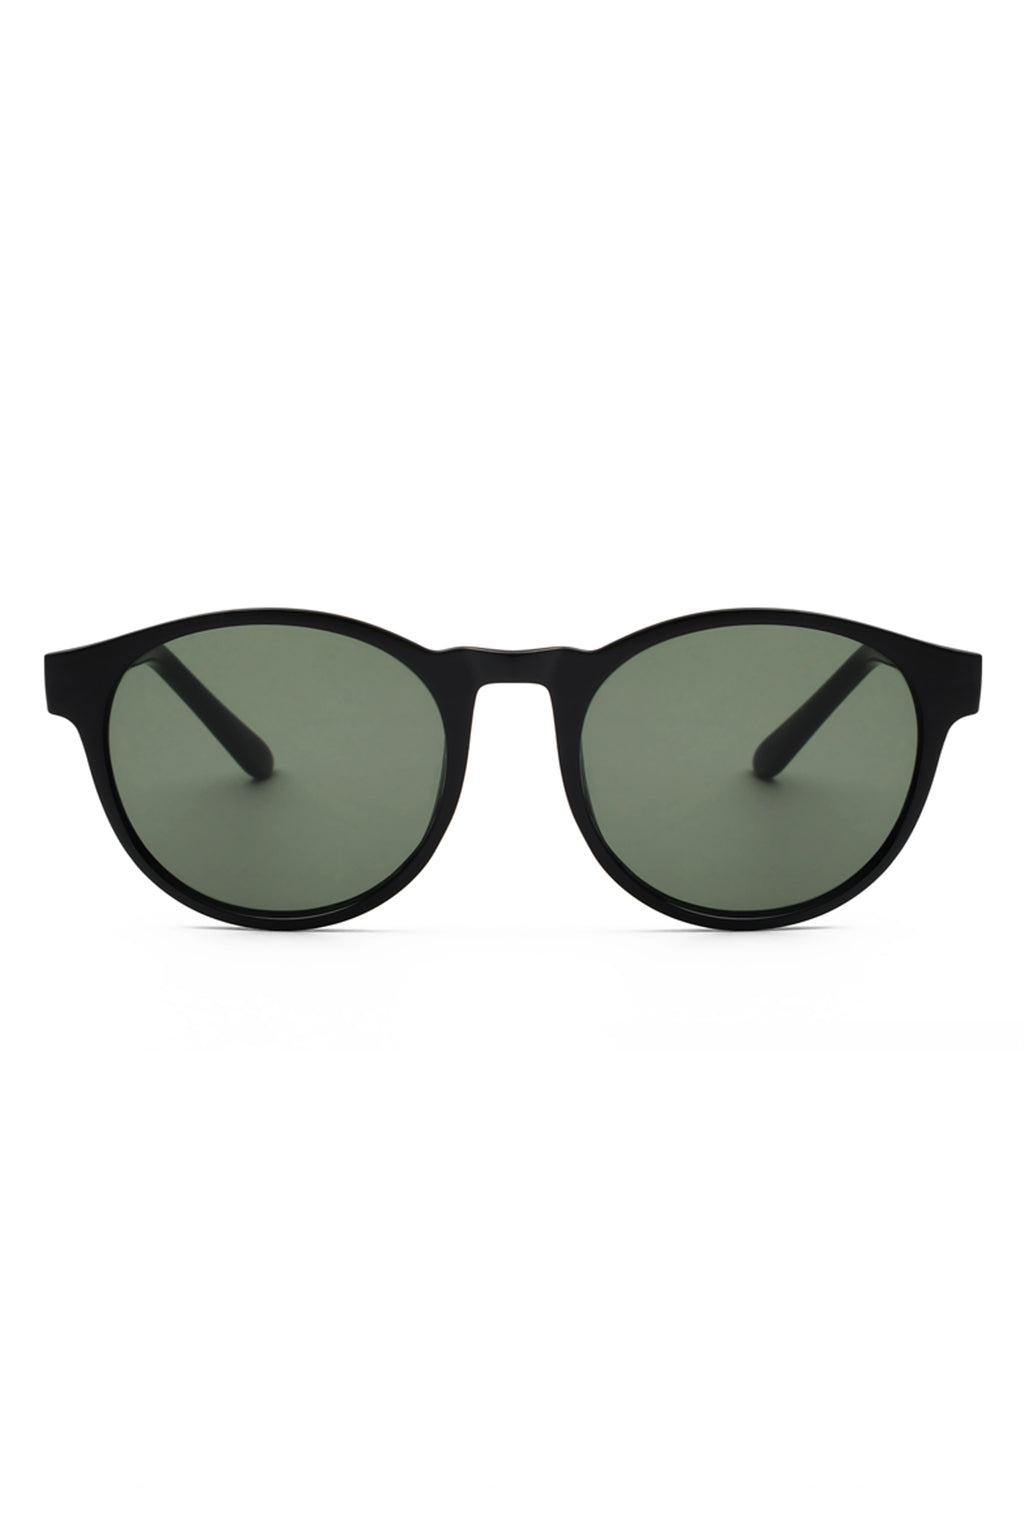 A Kjaerbede Marvin Black Sunglasses - The Mercantile London